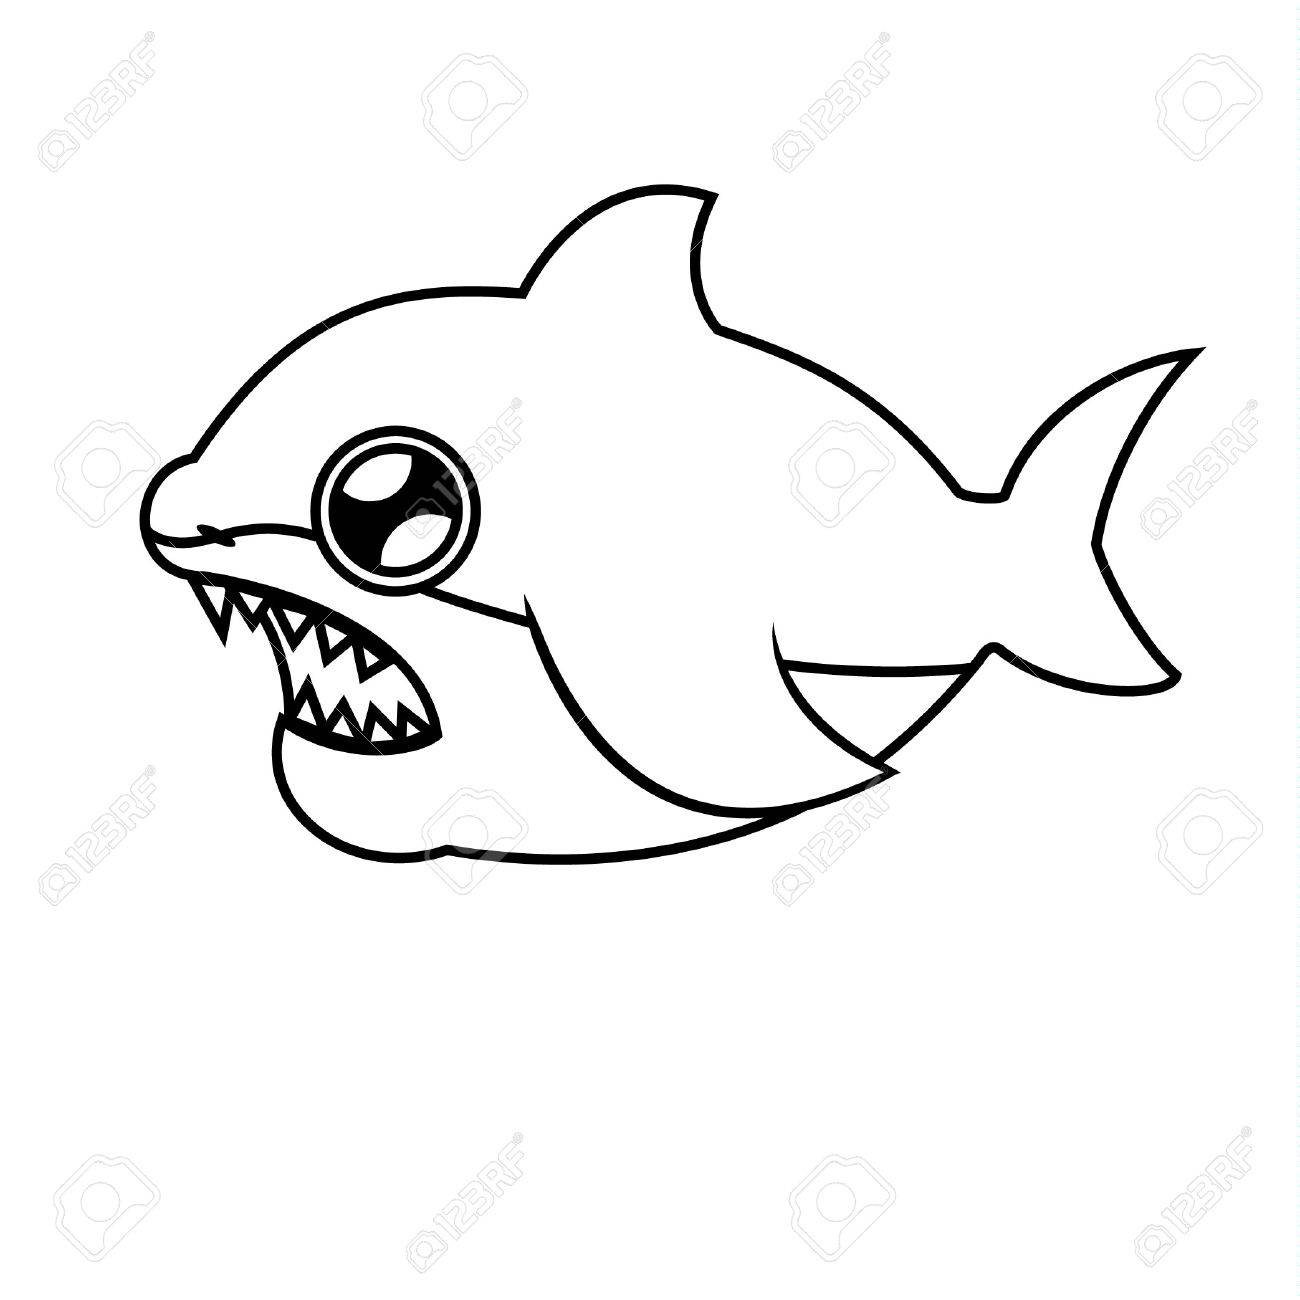 Linear Figure Of A Shark. Coloring. SHARK WITH OPEN JOY. Royalty ...